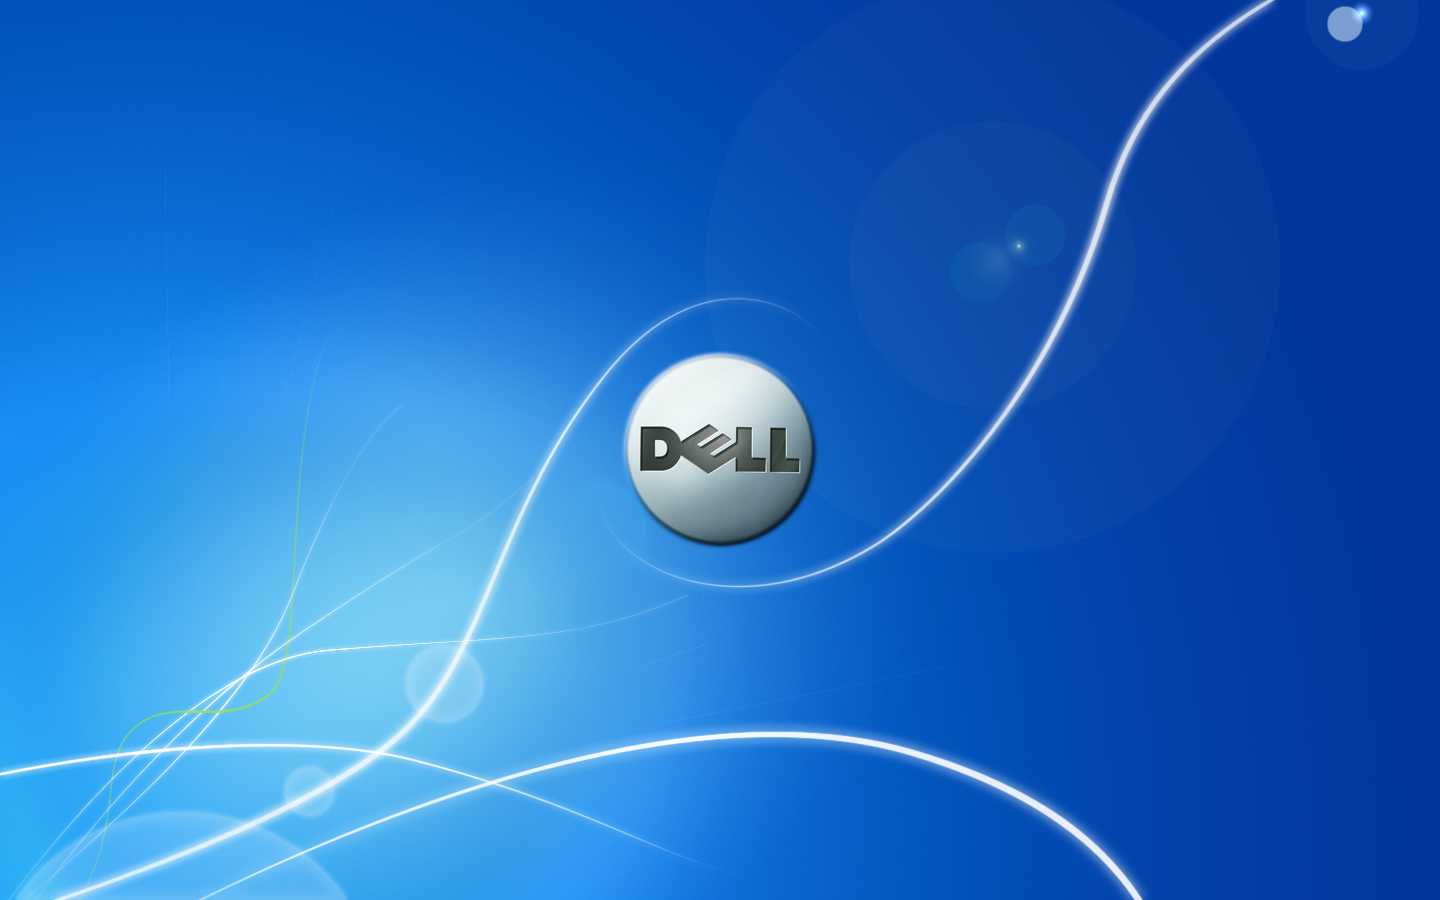 HD Dell Backgrounds Dell Wallpaper Images For Windows 1440x900